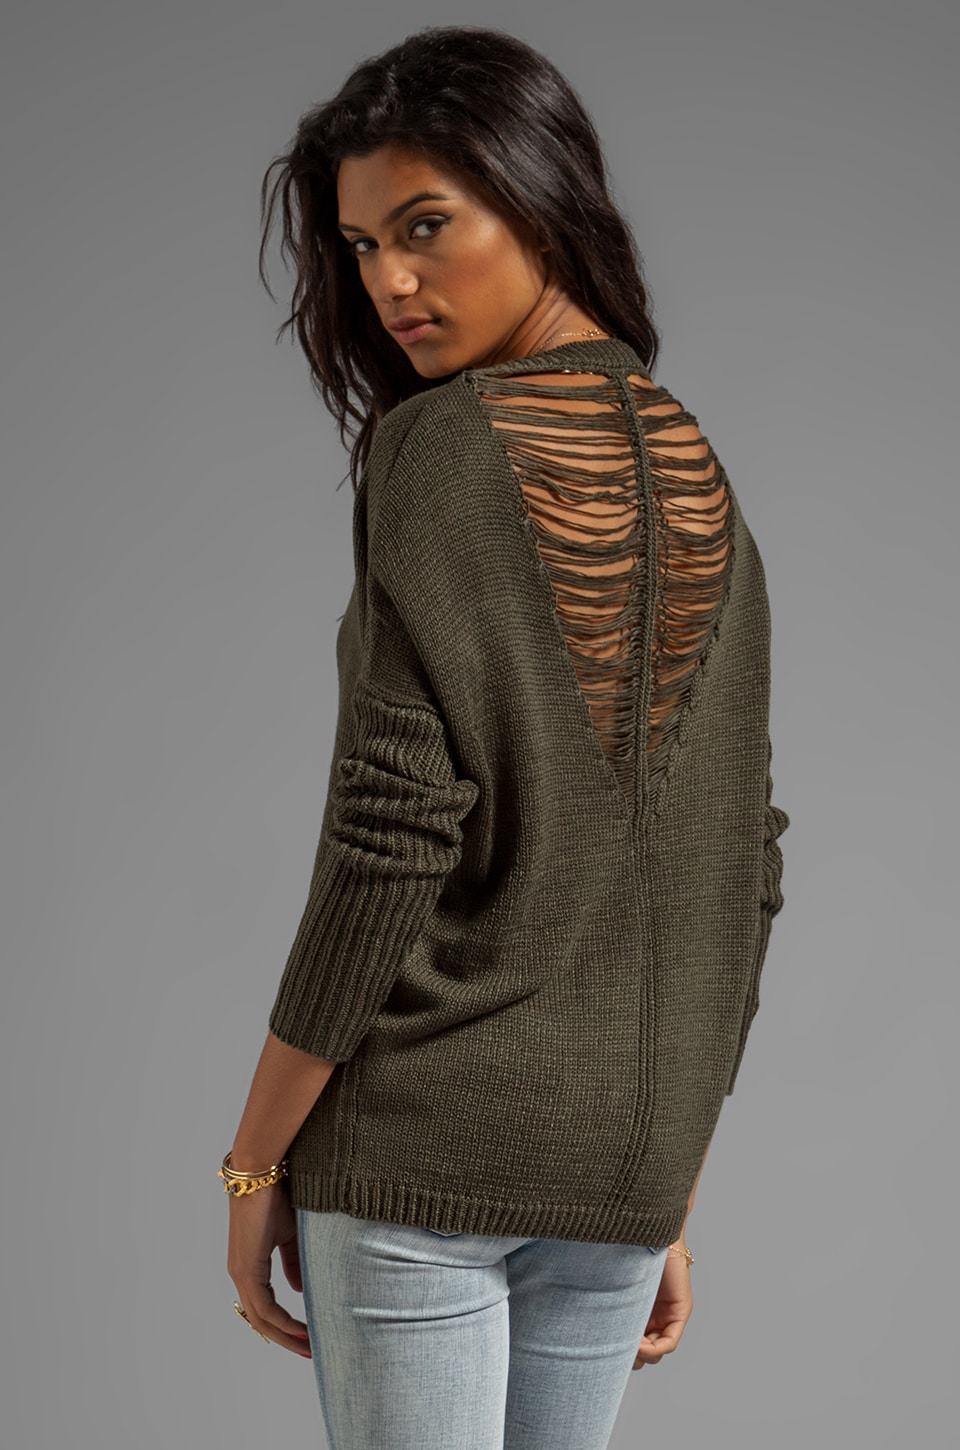 Dakota Collective Adara Drape Yarn Back Sweater in Olive